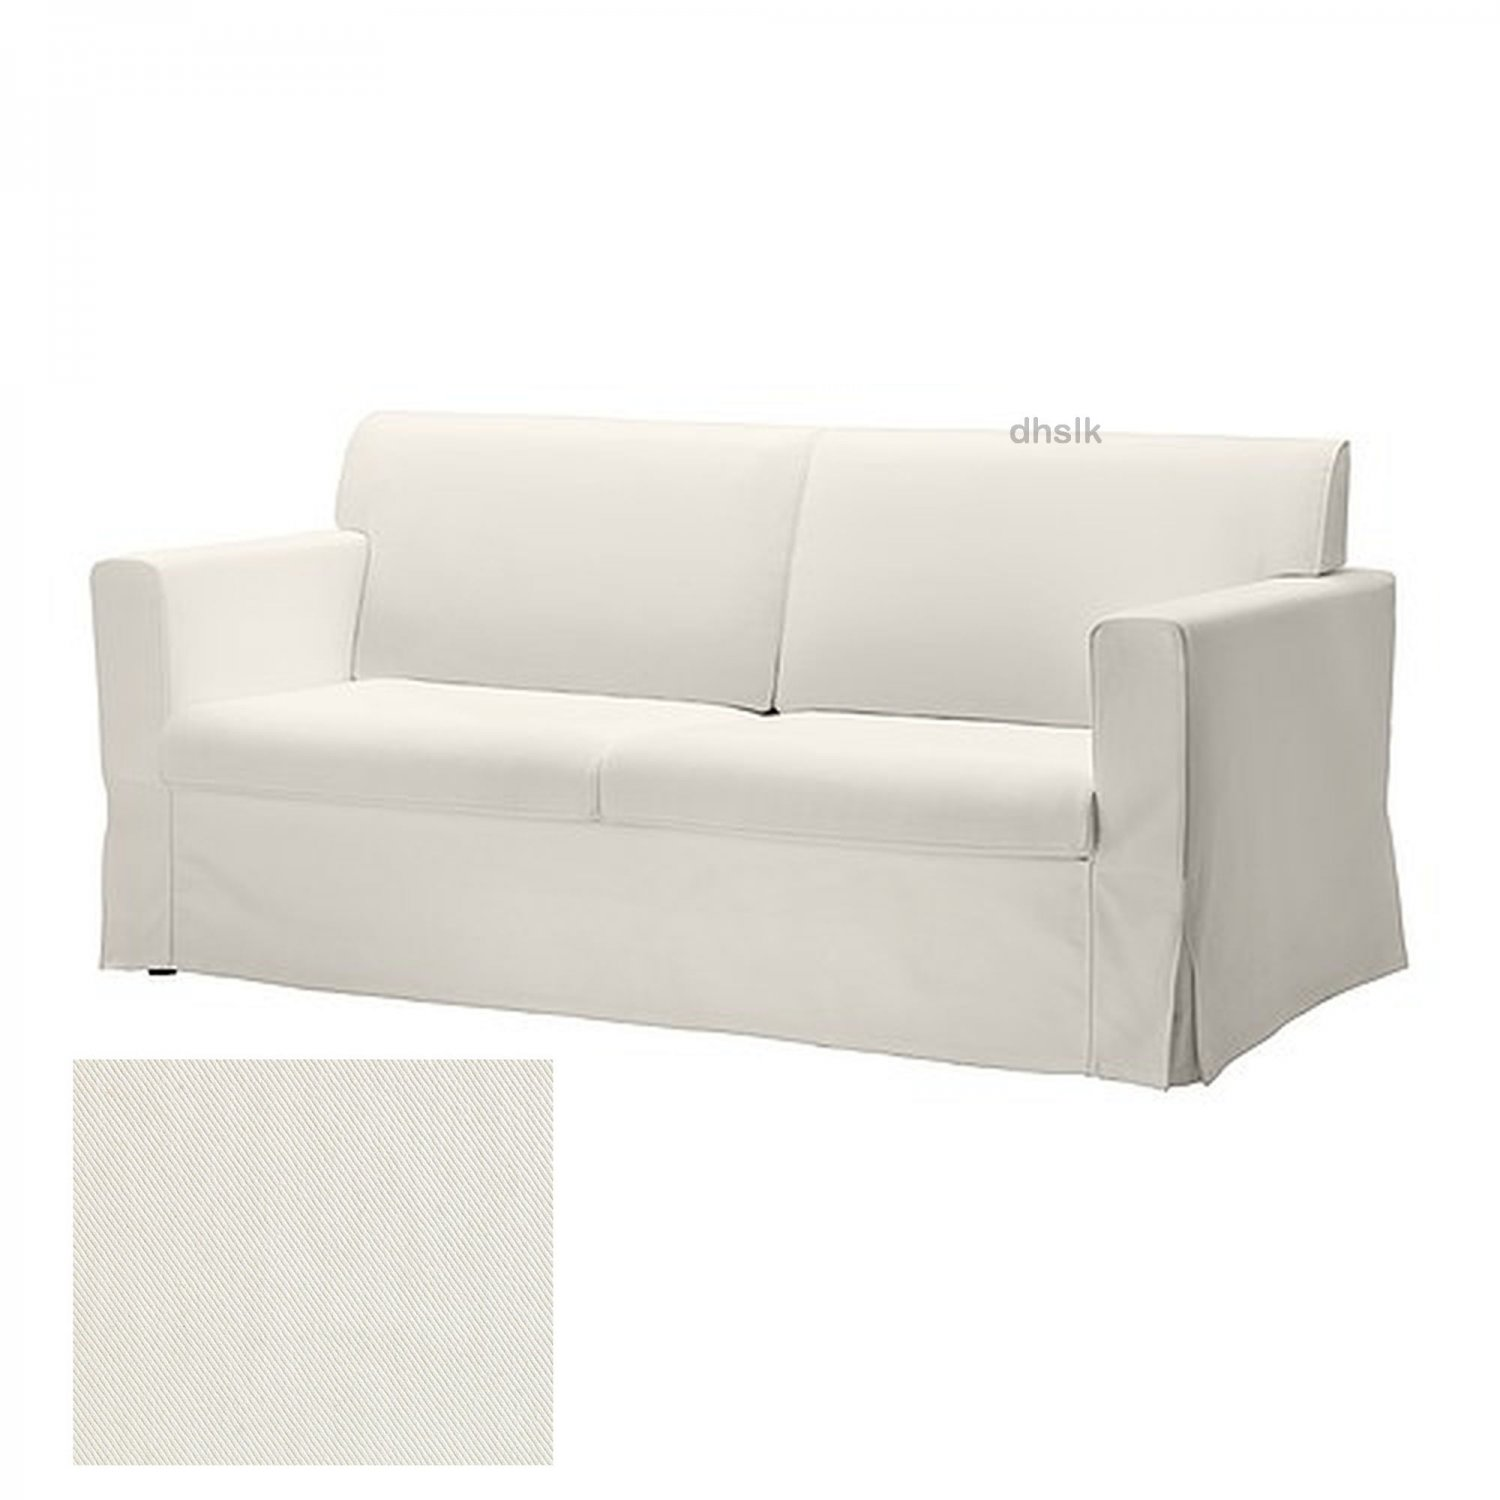 White Chair Slipcover Ikea Sandby 3 Seat Sofa Slipcover Cover Blekinge White